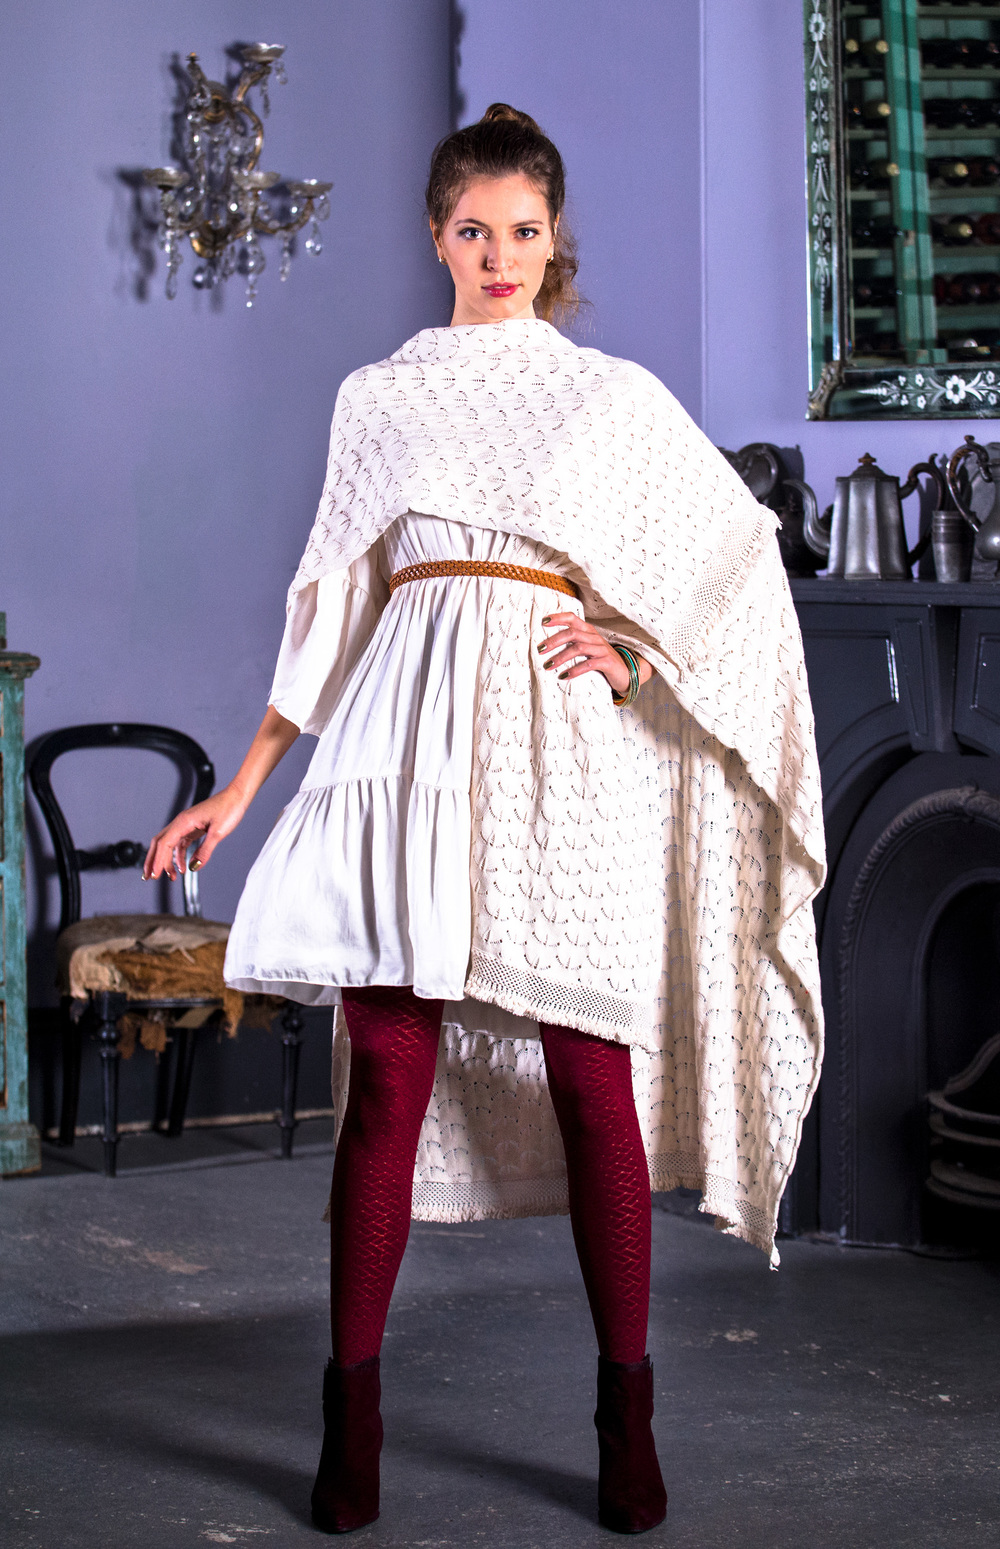 Style this Naudic Cape with a pair of tights in decadent maroon